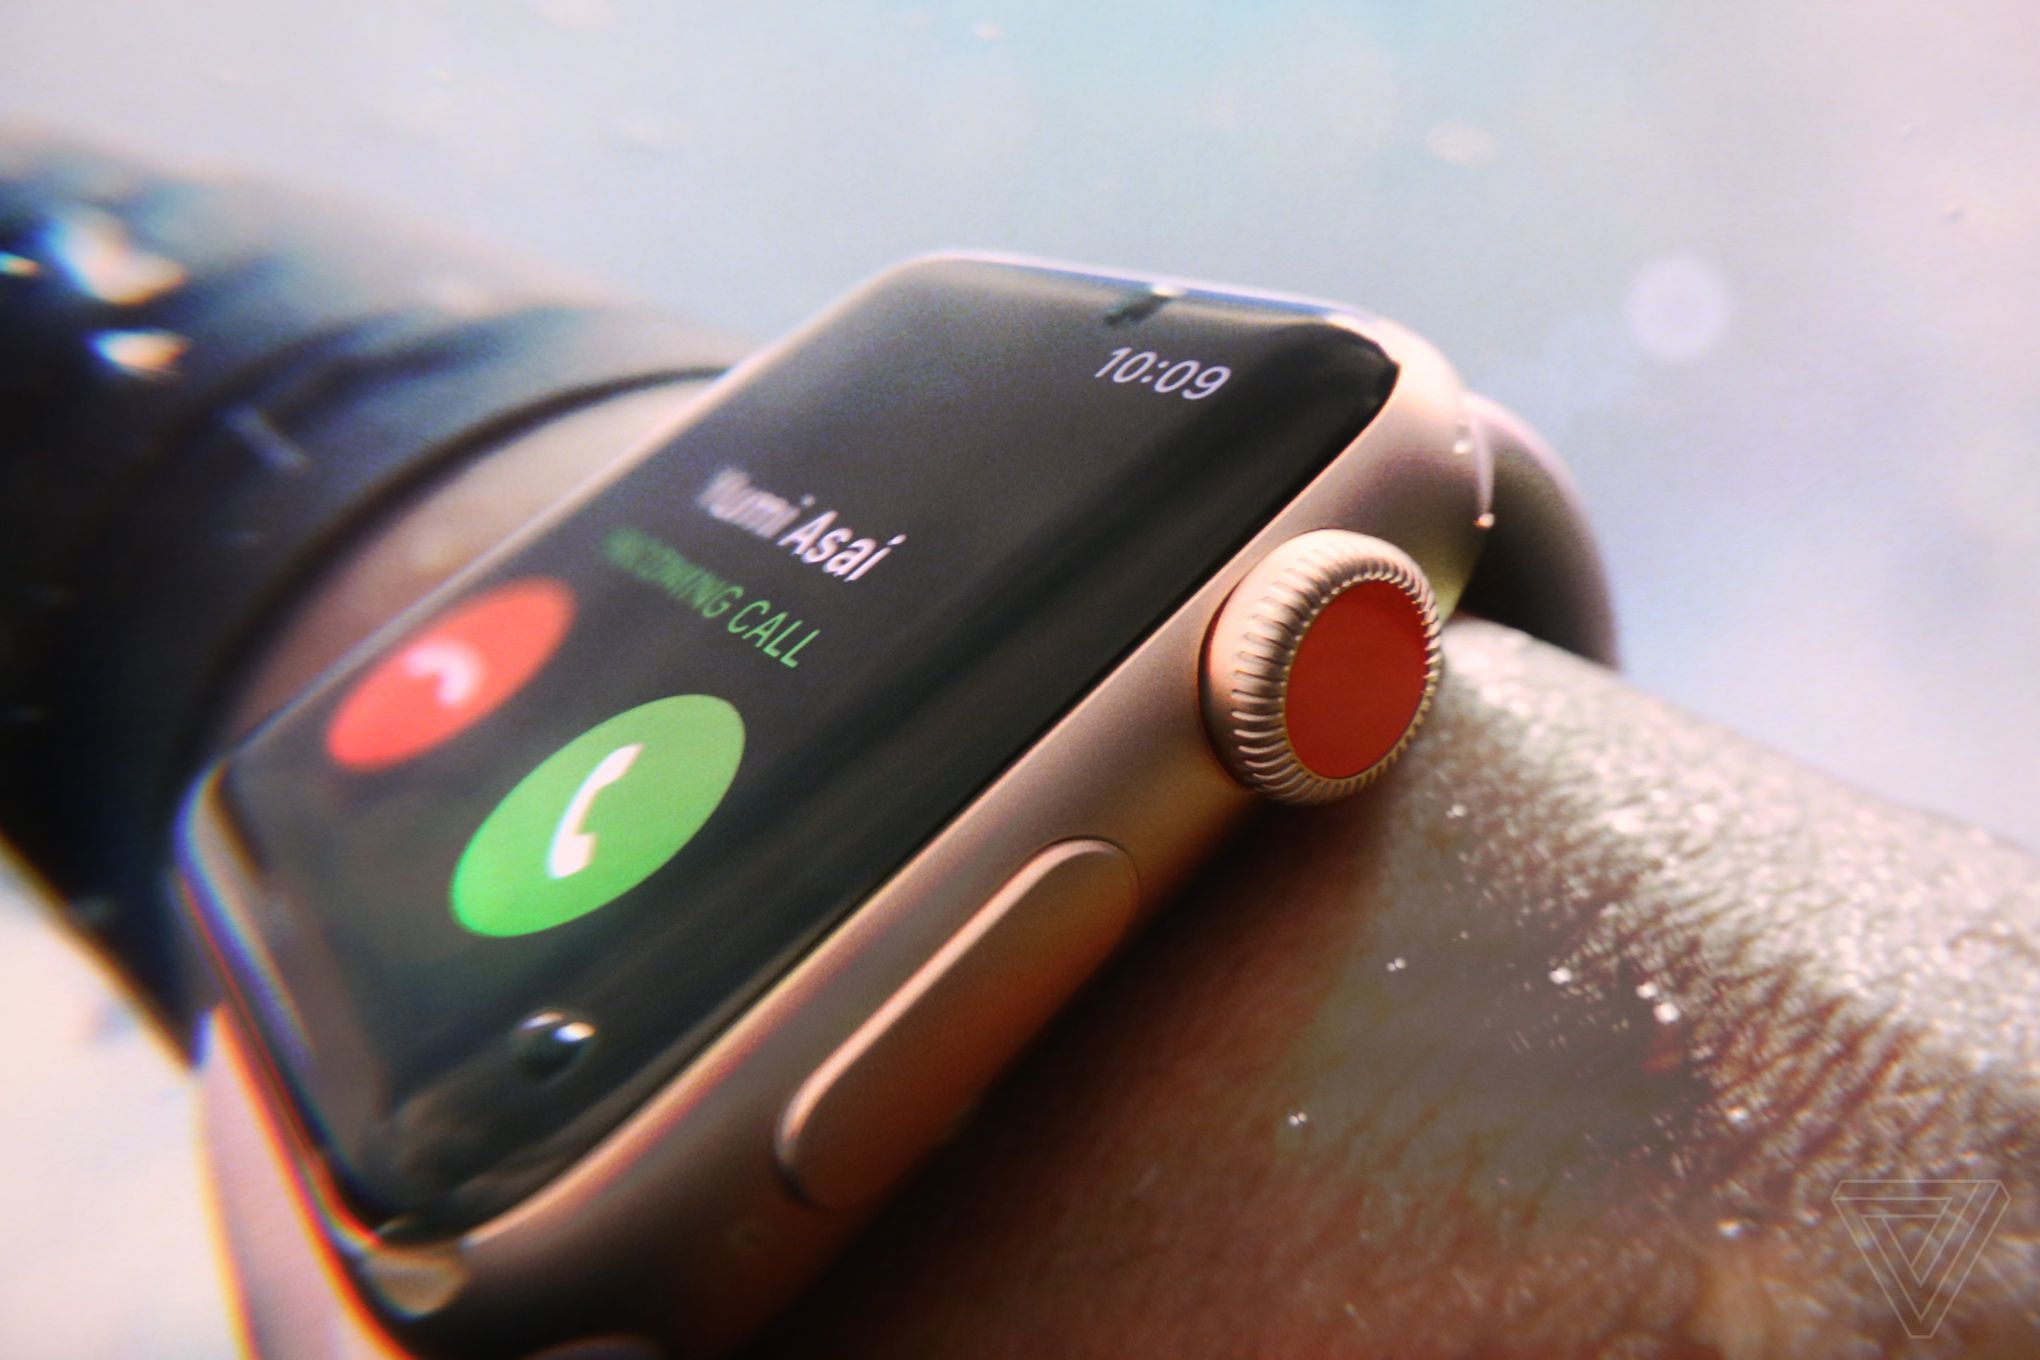 Apple admite falhas no Apple Watch LTE